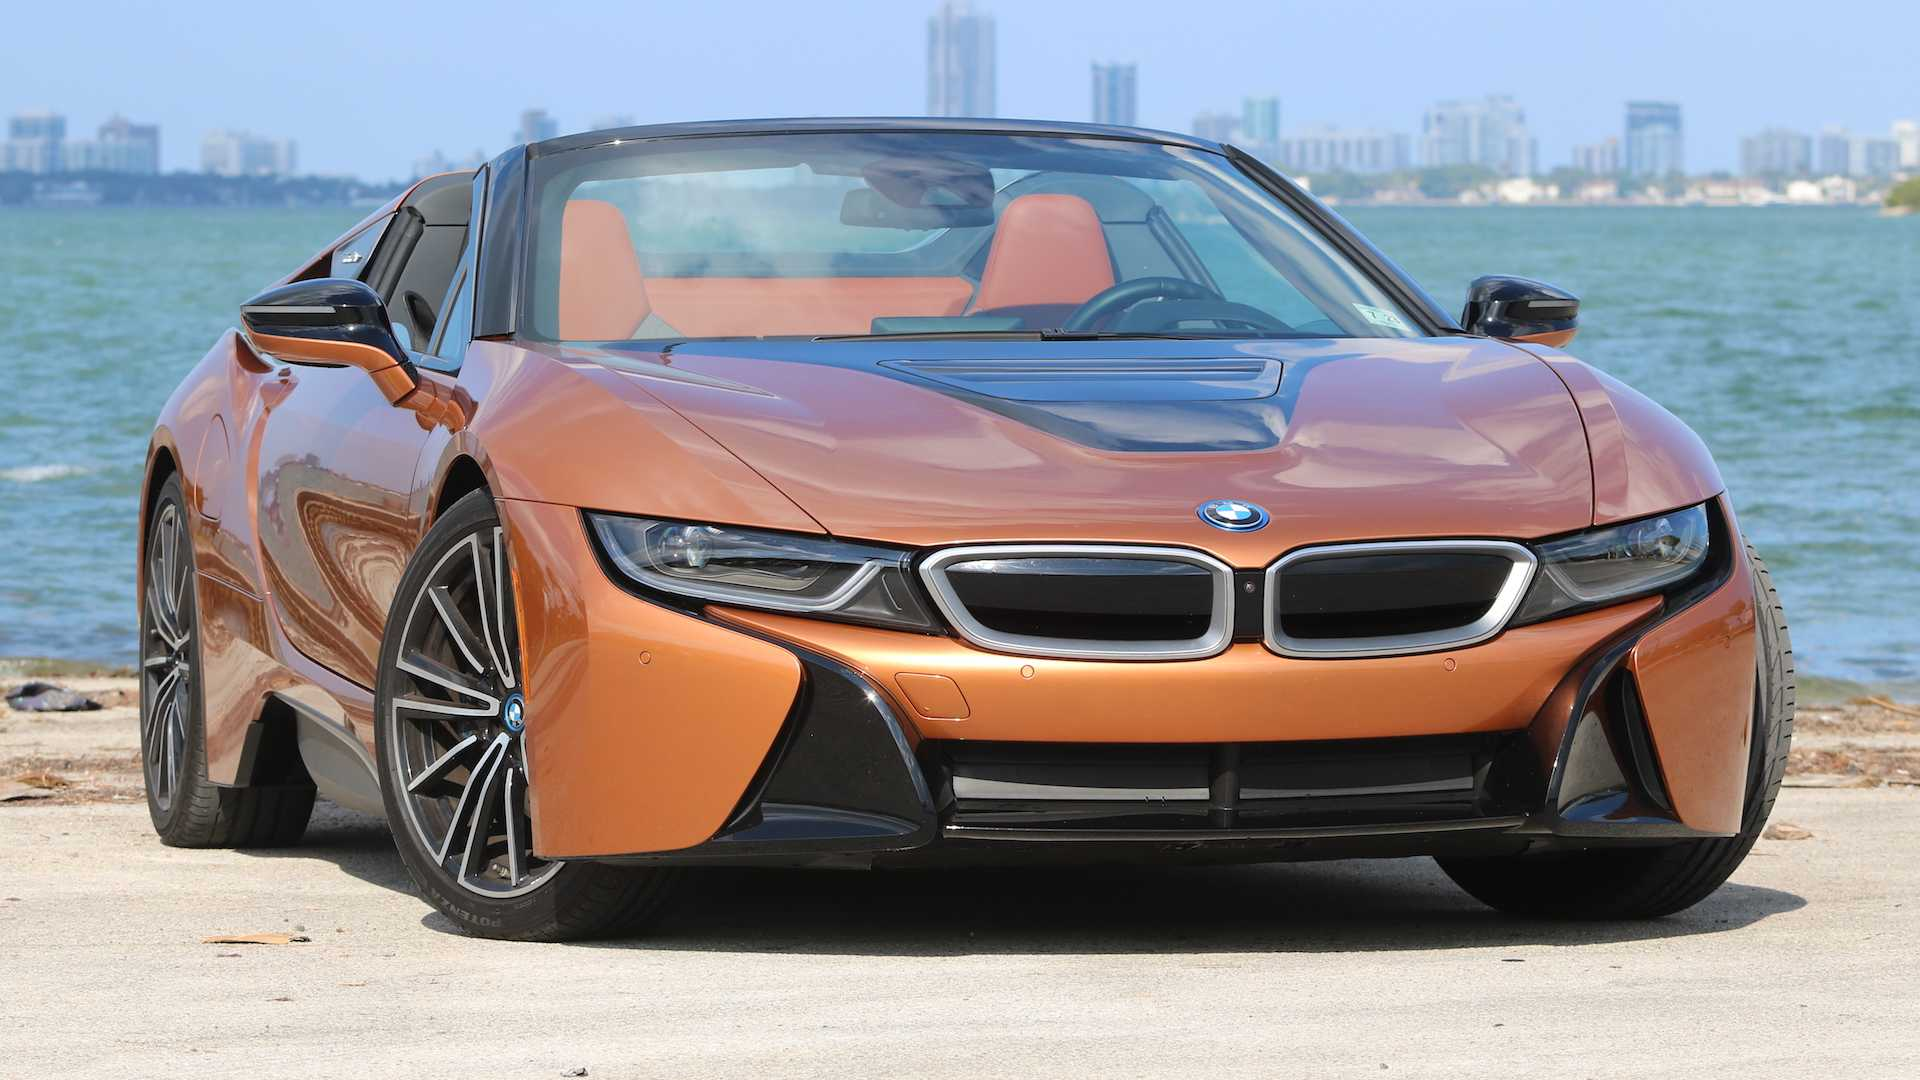 16 Concept of Upcoming Bmw 2019 Concept Redesign And Review Performance and New Engine for Upcoming Bmw 2019 Concept Redesign And Review